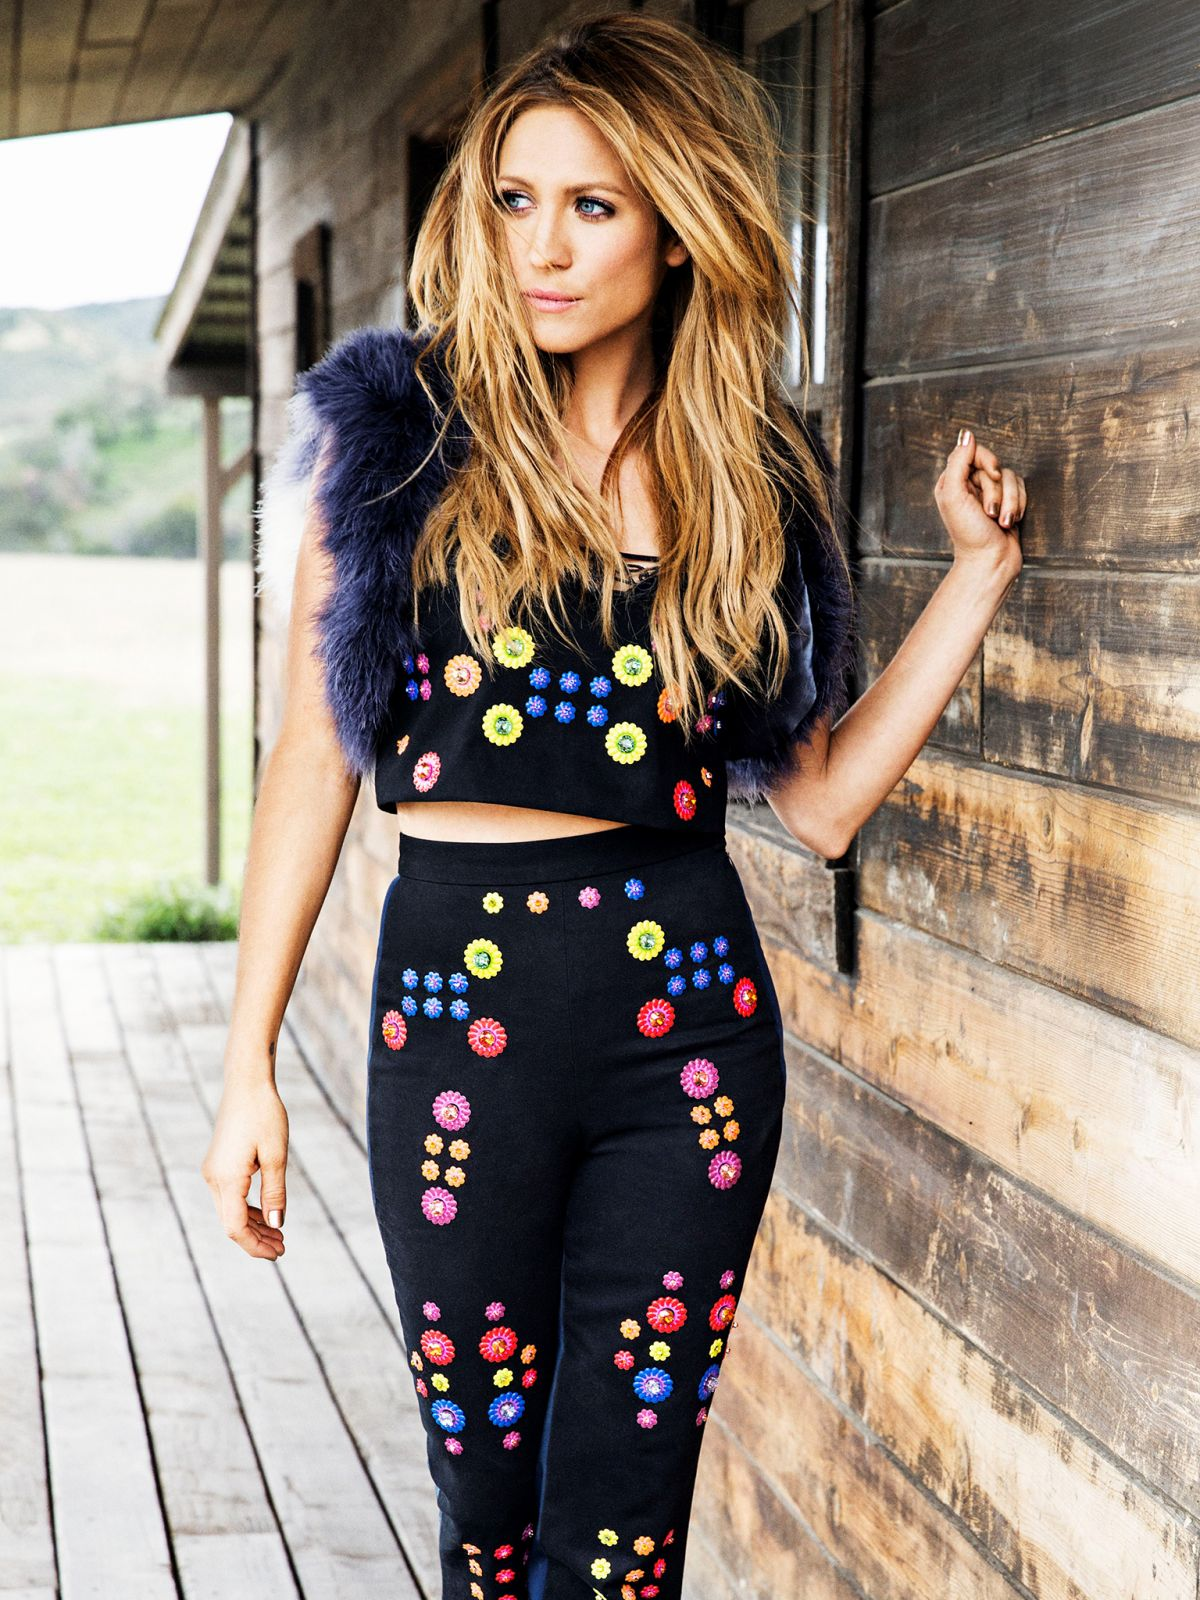 BRITTANY SNOW in Cosmopolitan Magazine, May 2015 Issue